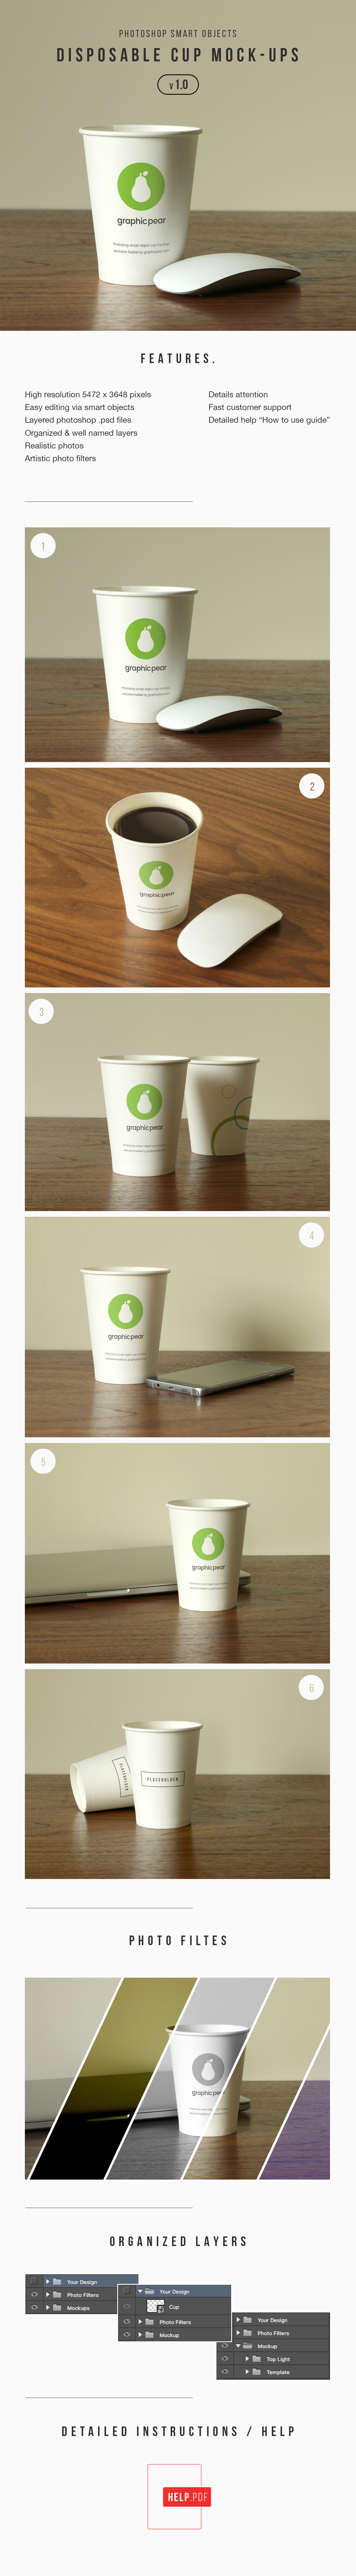 Disposable Cup Mockup